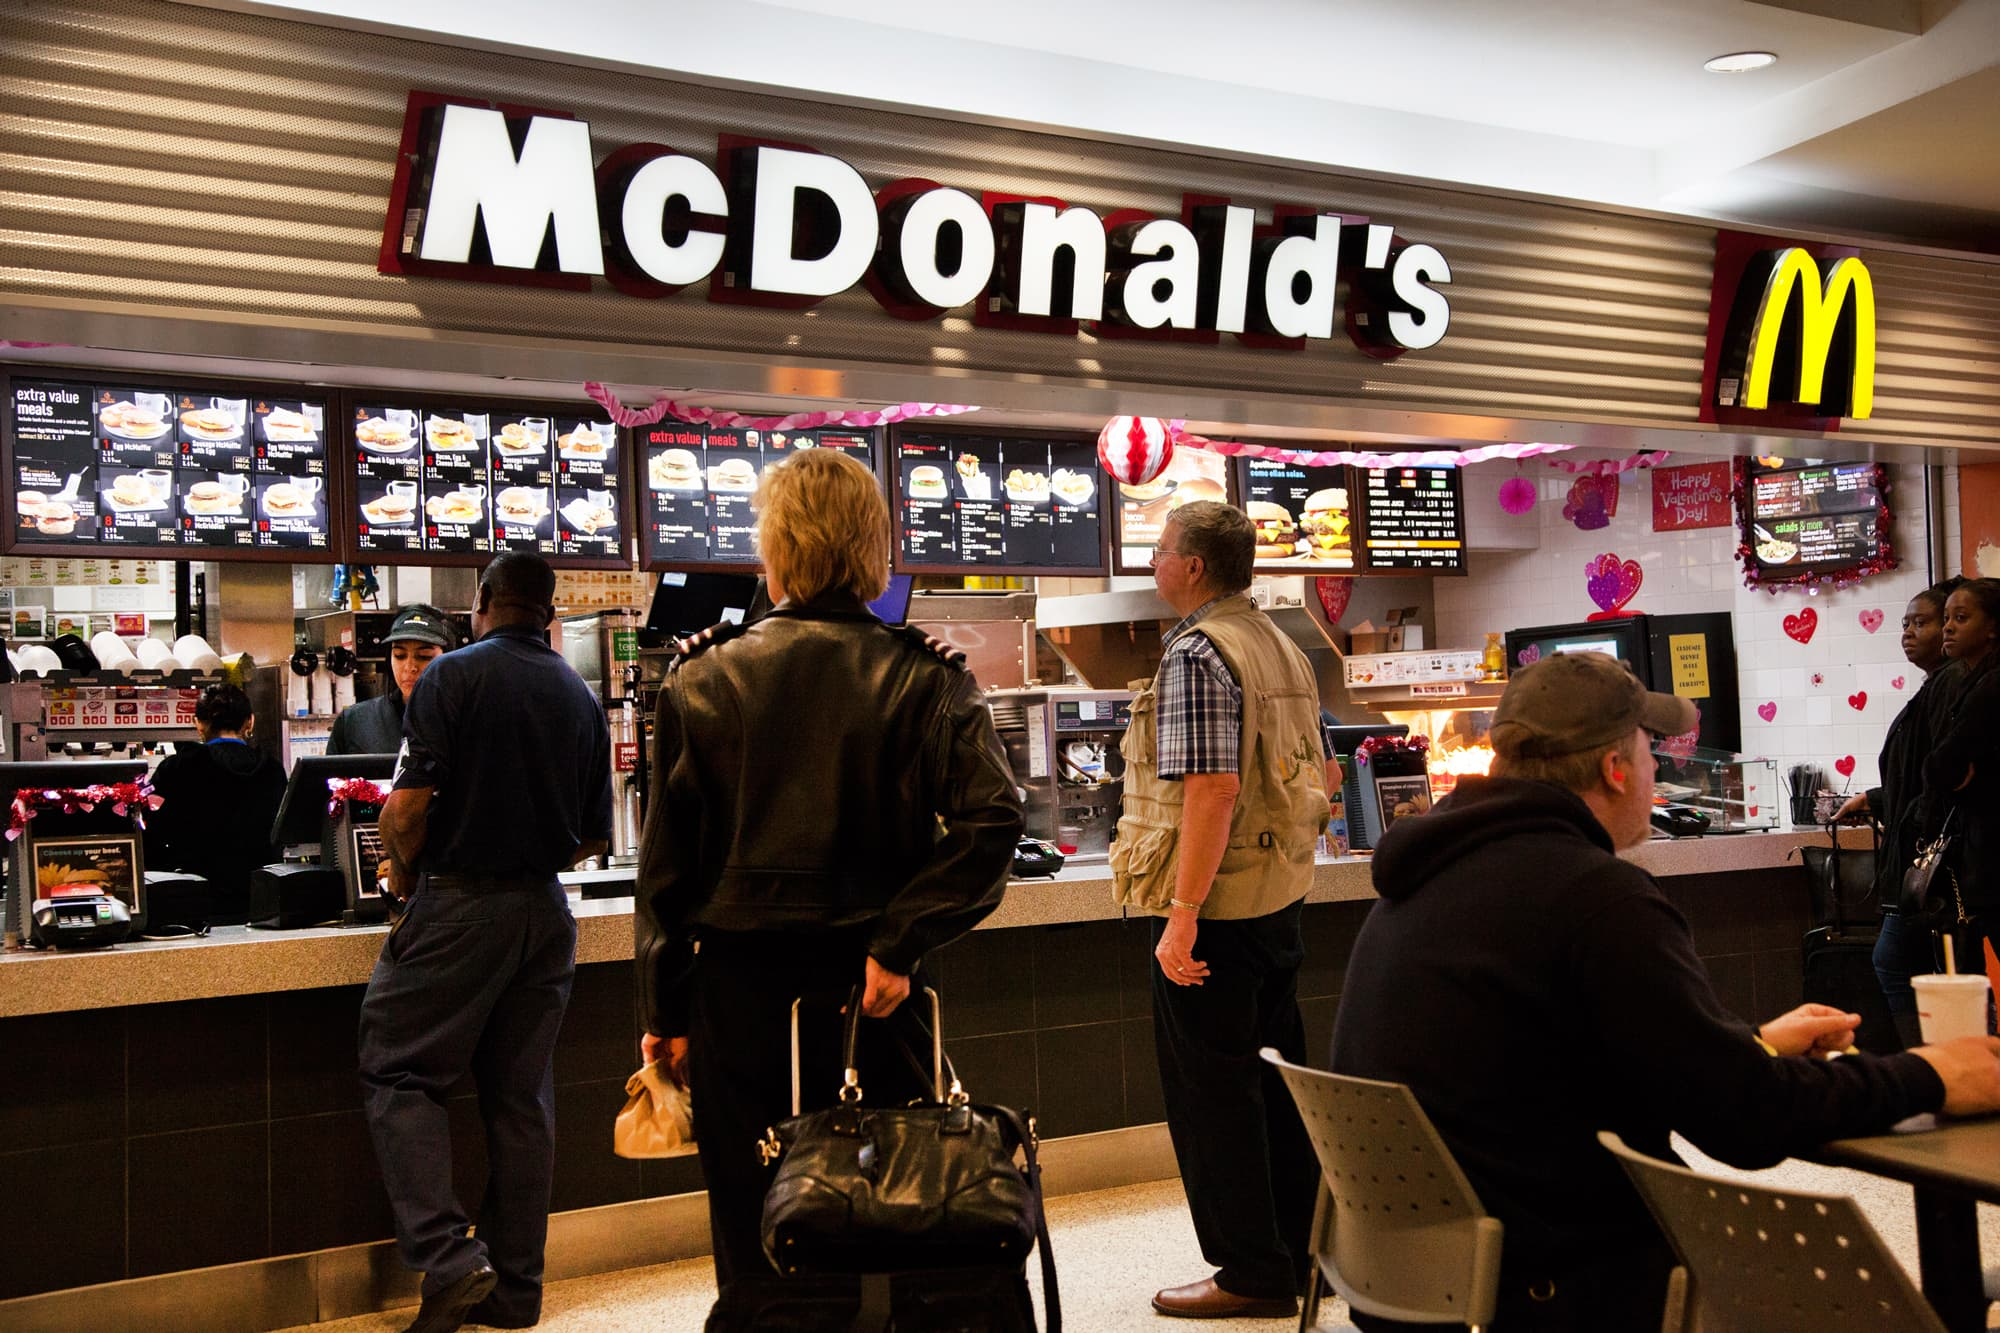 McDonald's franchisees have never been this depressed